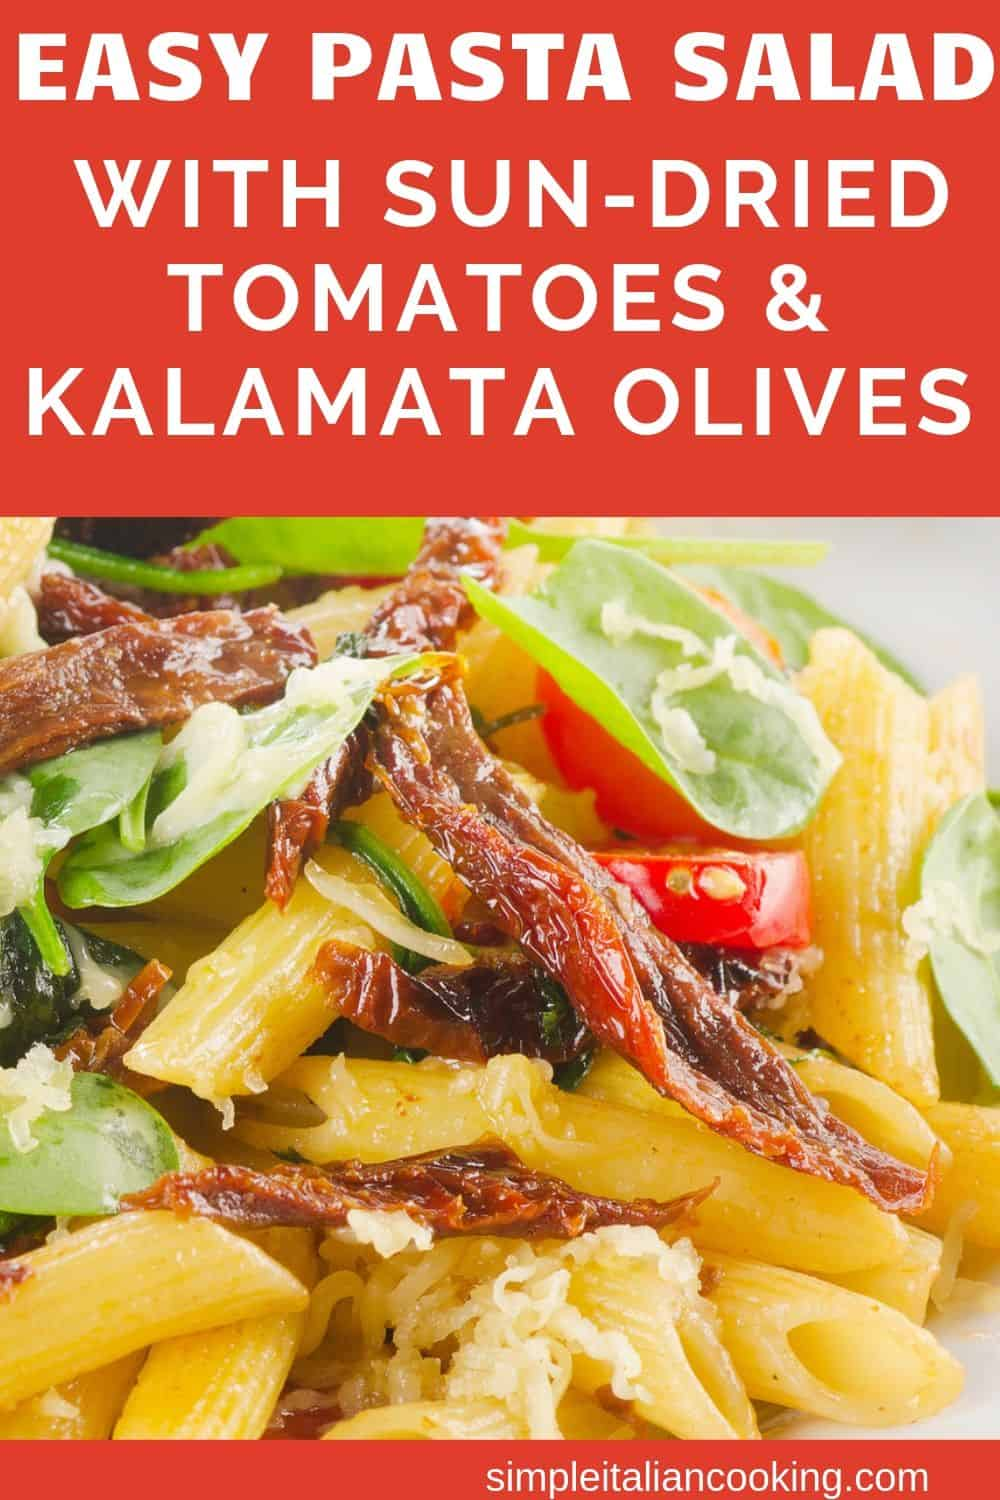 Easy Pasta Salad with Sun-dried Tomatoes and Kalamata Olives